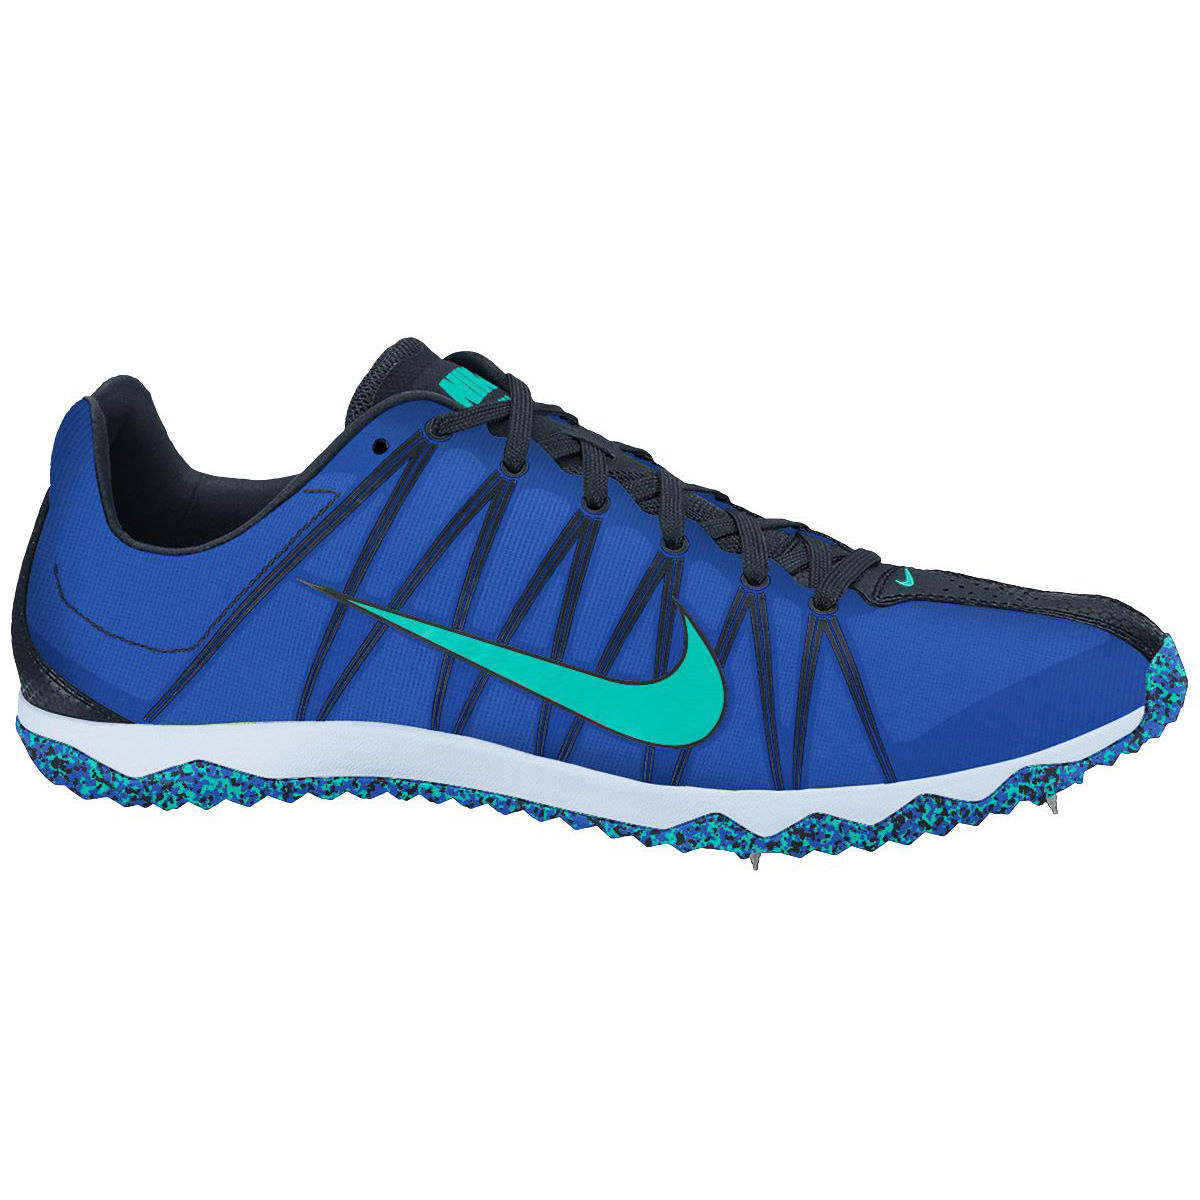 Nike Zoom Rival Xc Shoes